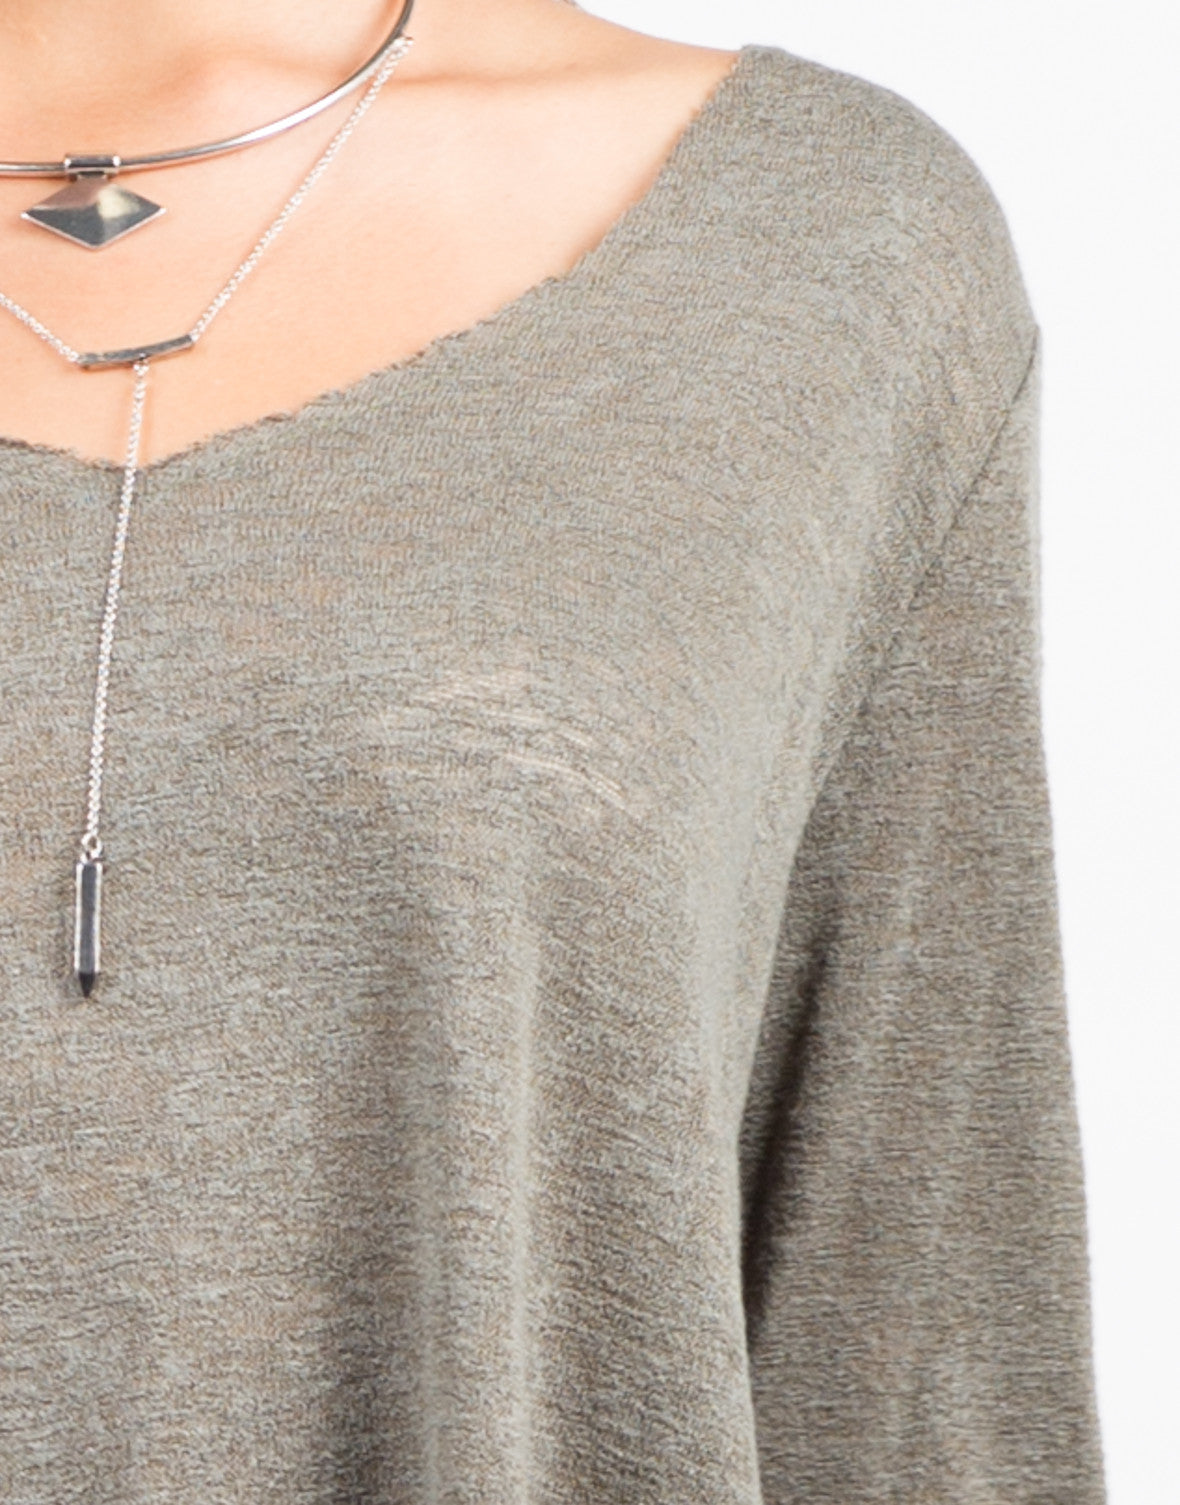 Detail of Basic Long Sleeve Top